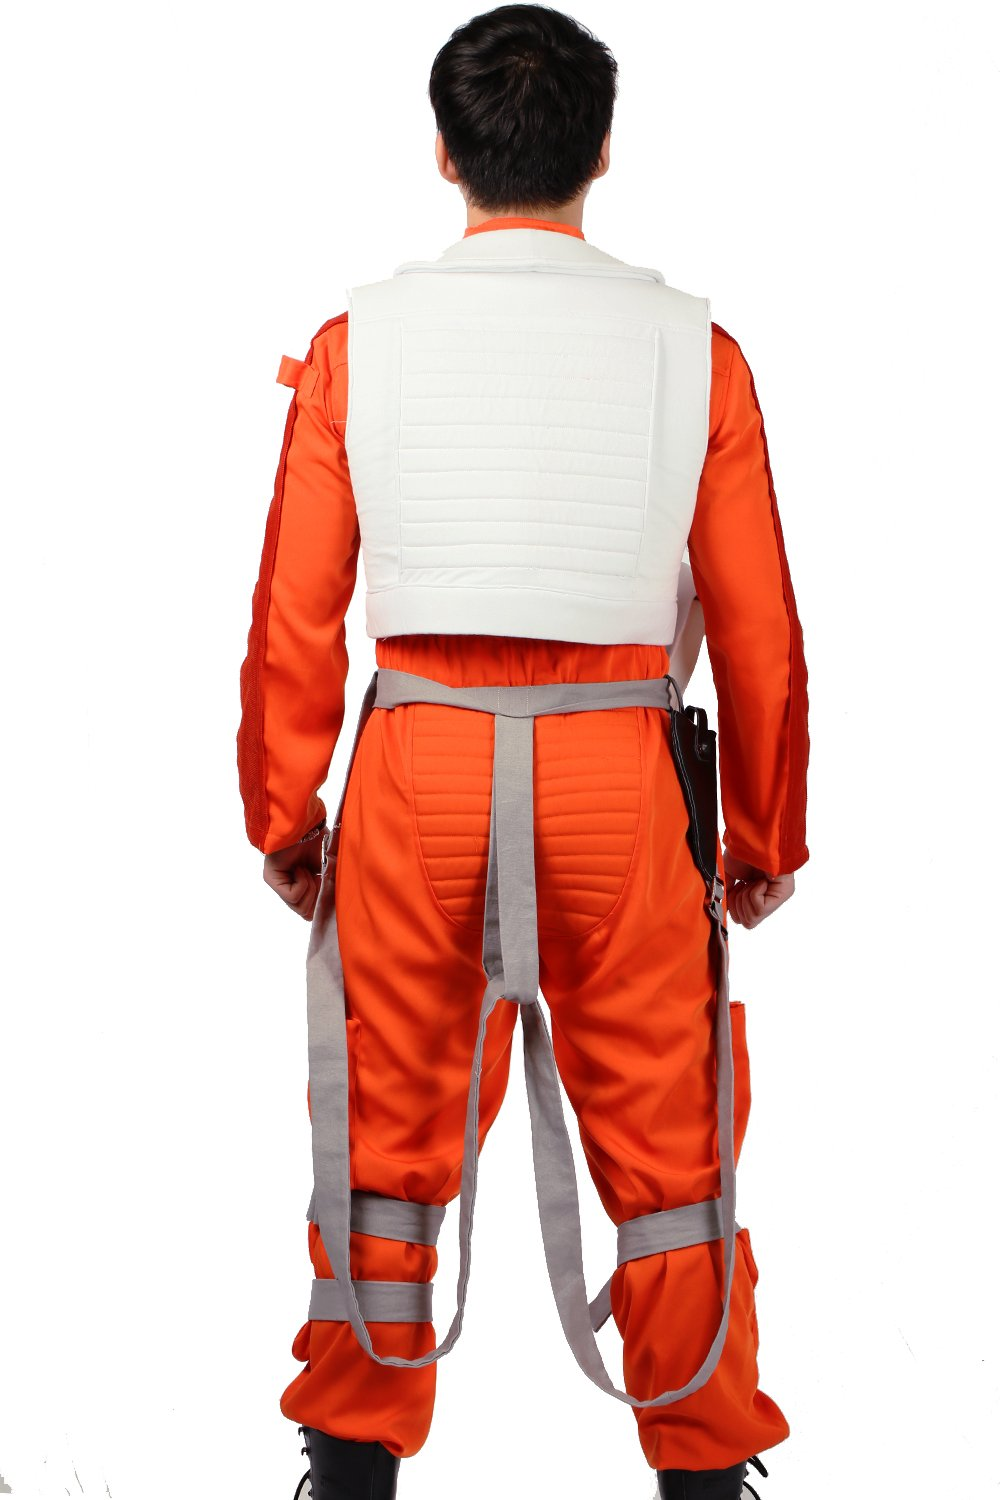 XCOSER Poe Dameron Costume Deluxe Orange Jumpsuit Suit Halloween Cosplay Outfit XL by xcoser (Image #4)